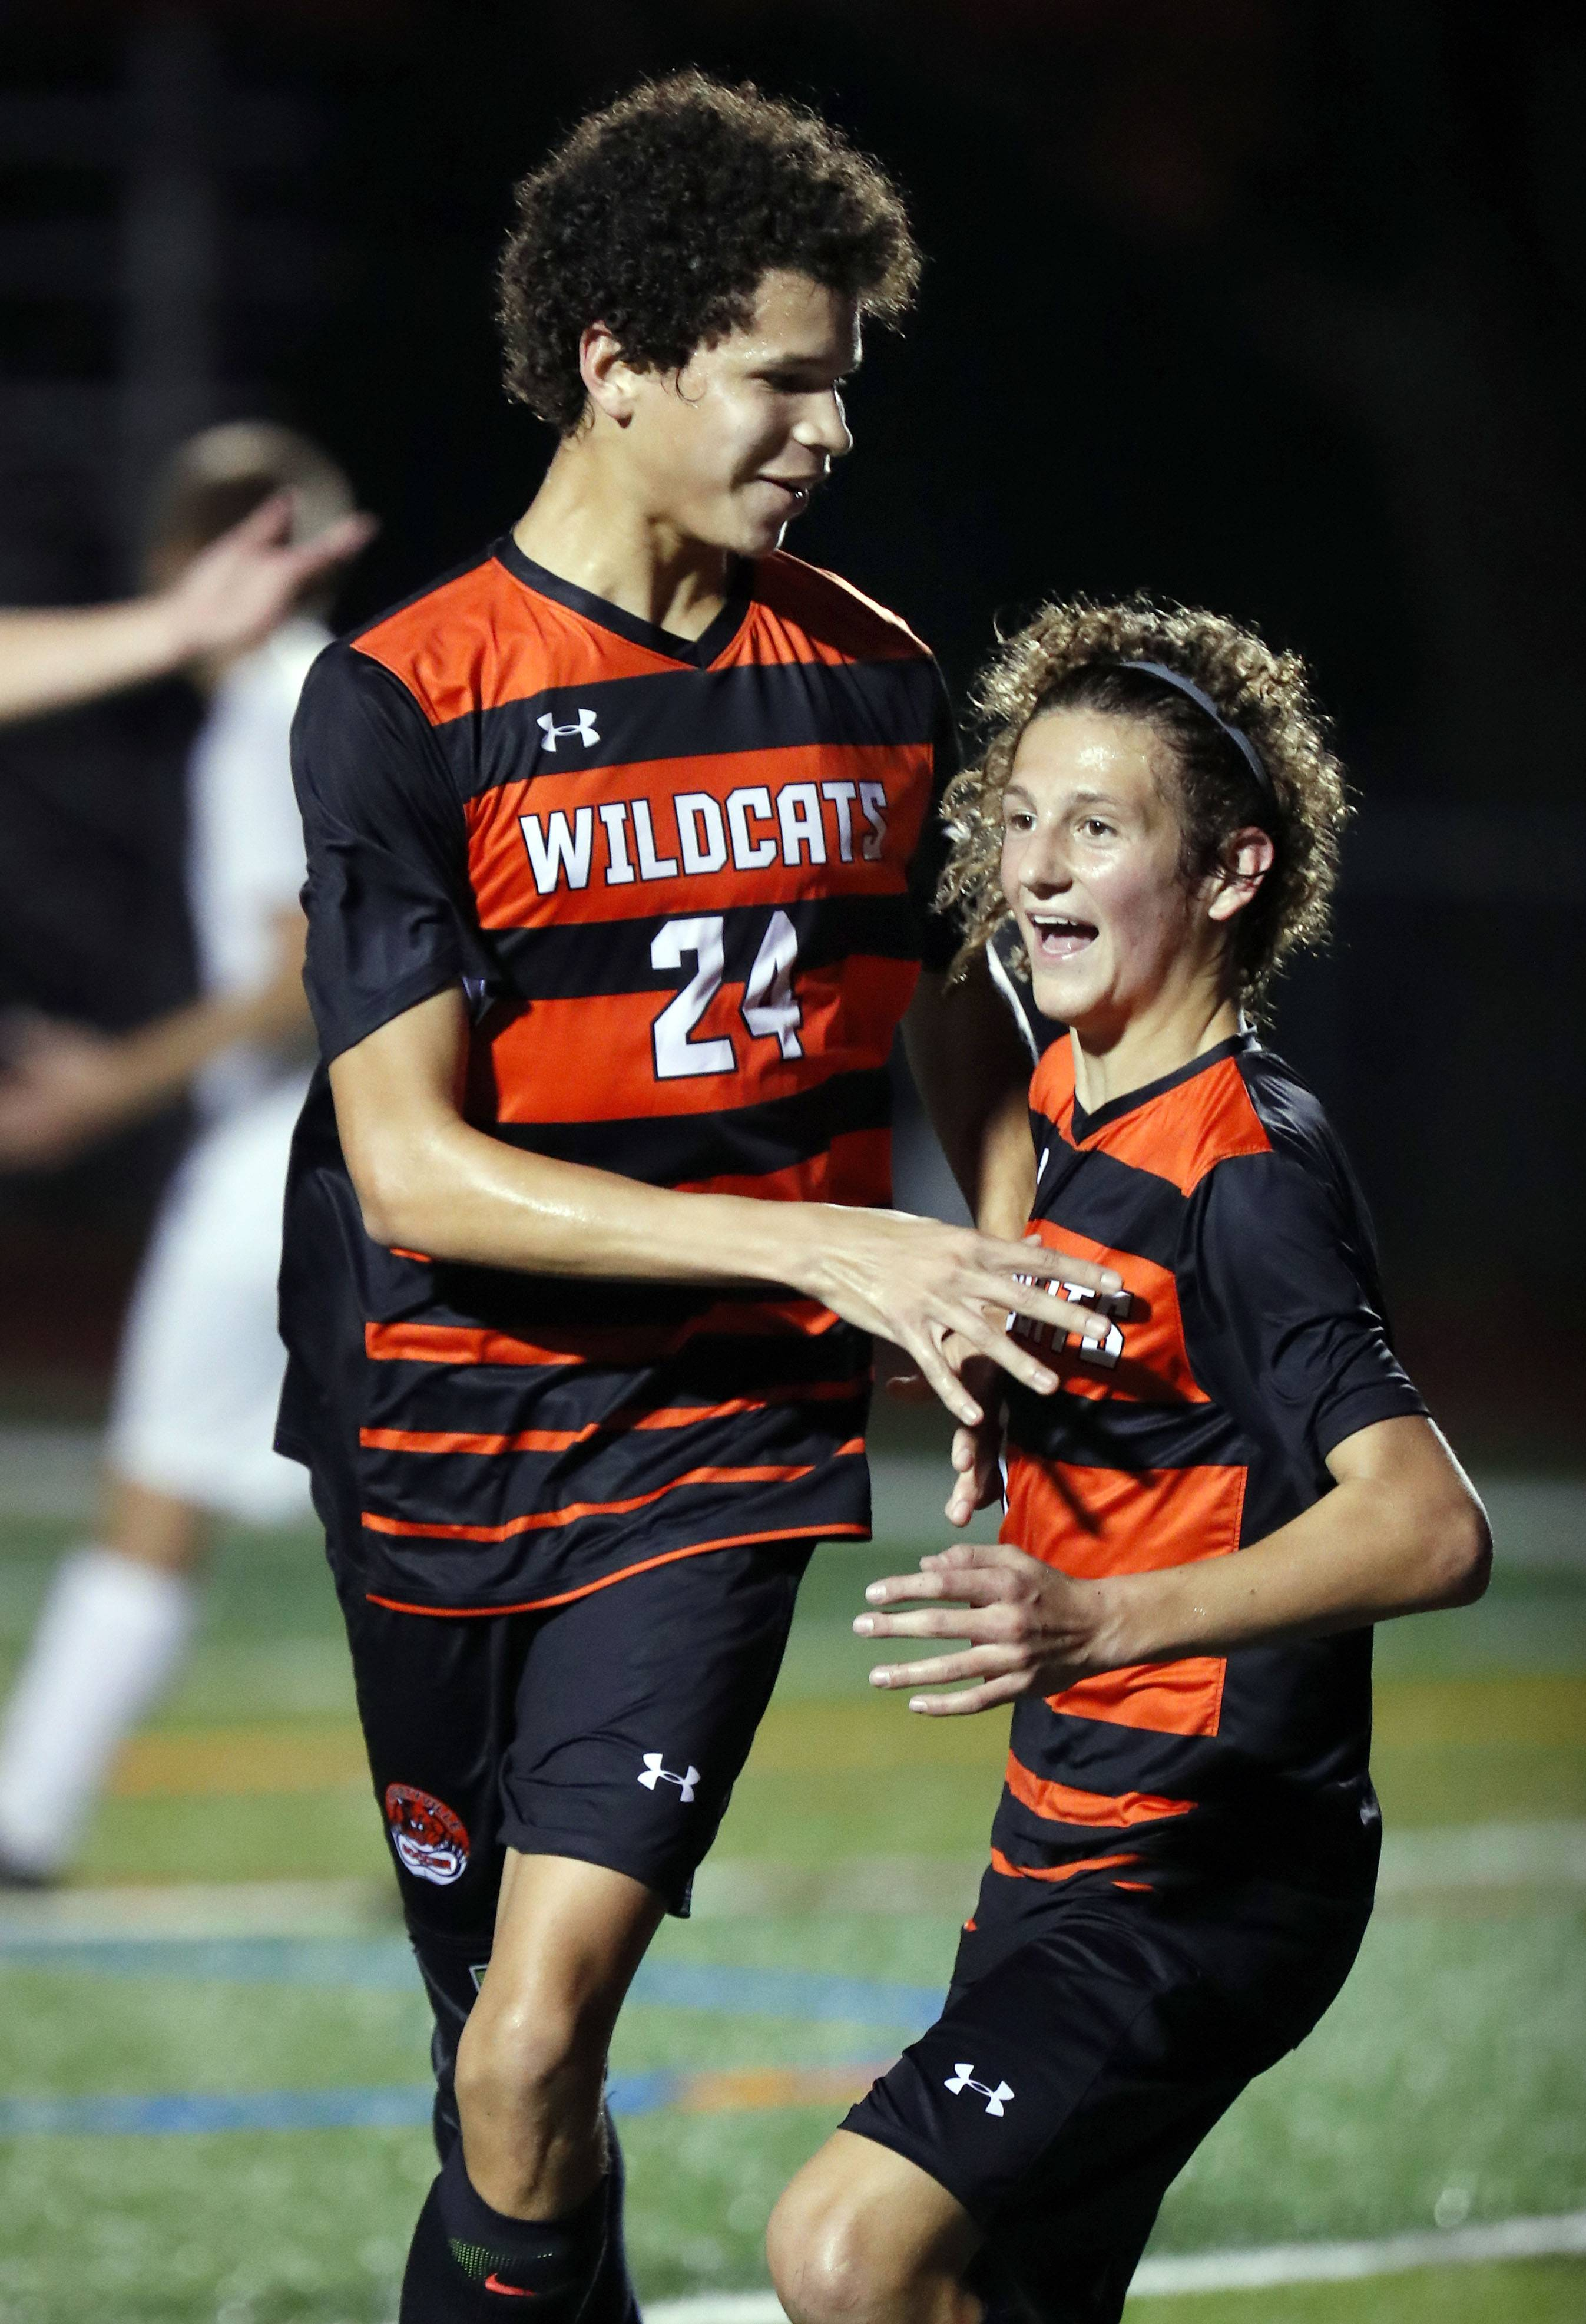 Libertyville's Mickey Reilly, right, celebrates with Mason Williams after Williams' goal during their game against Lake Forest Academy Tuesday night in Libertyville.